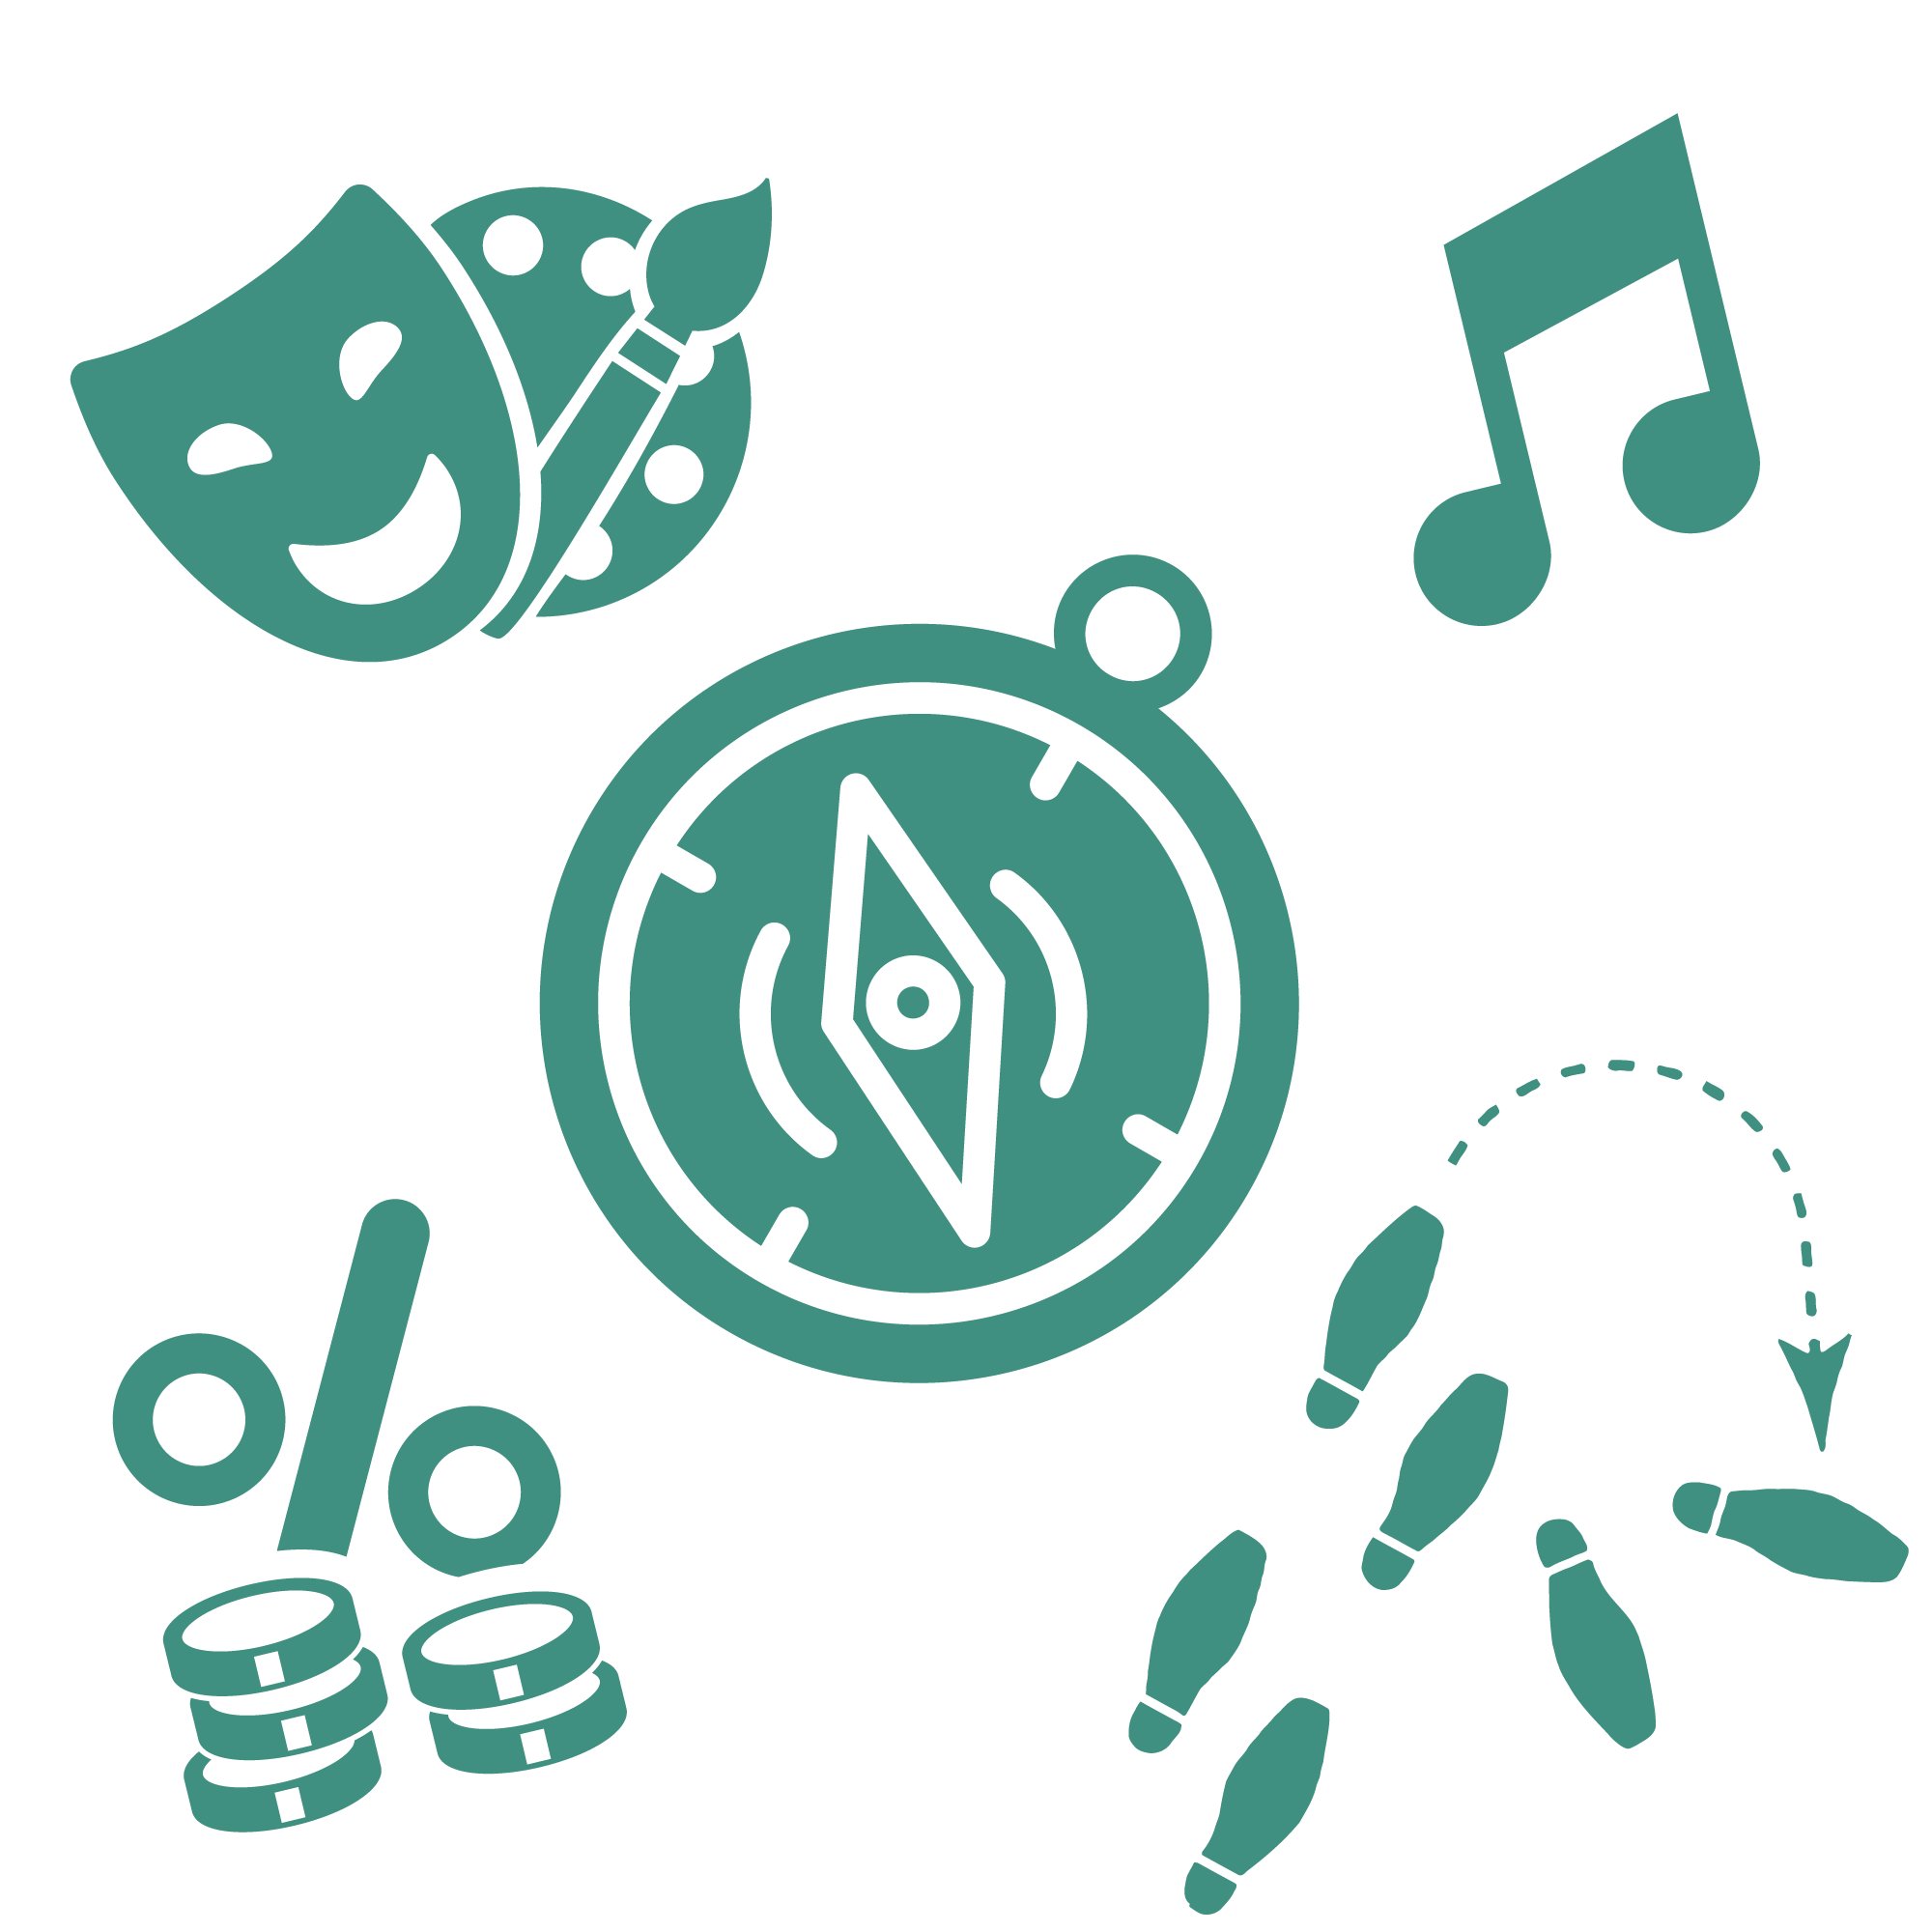 An icon depicting various after-school enrichment activities